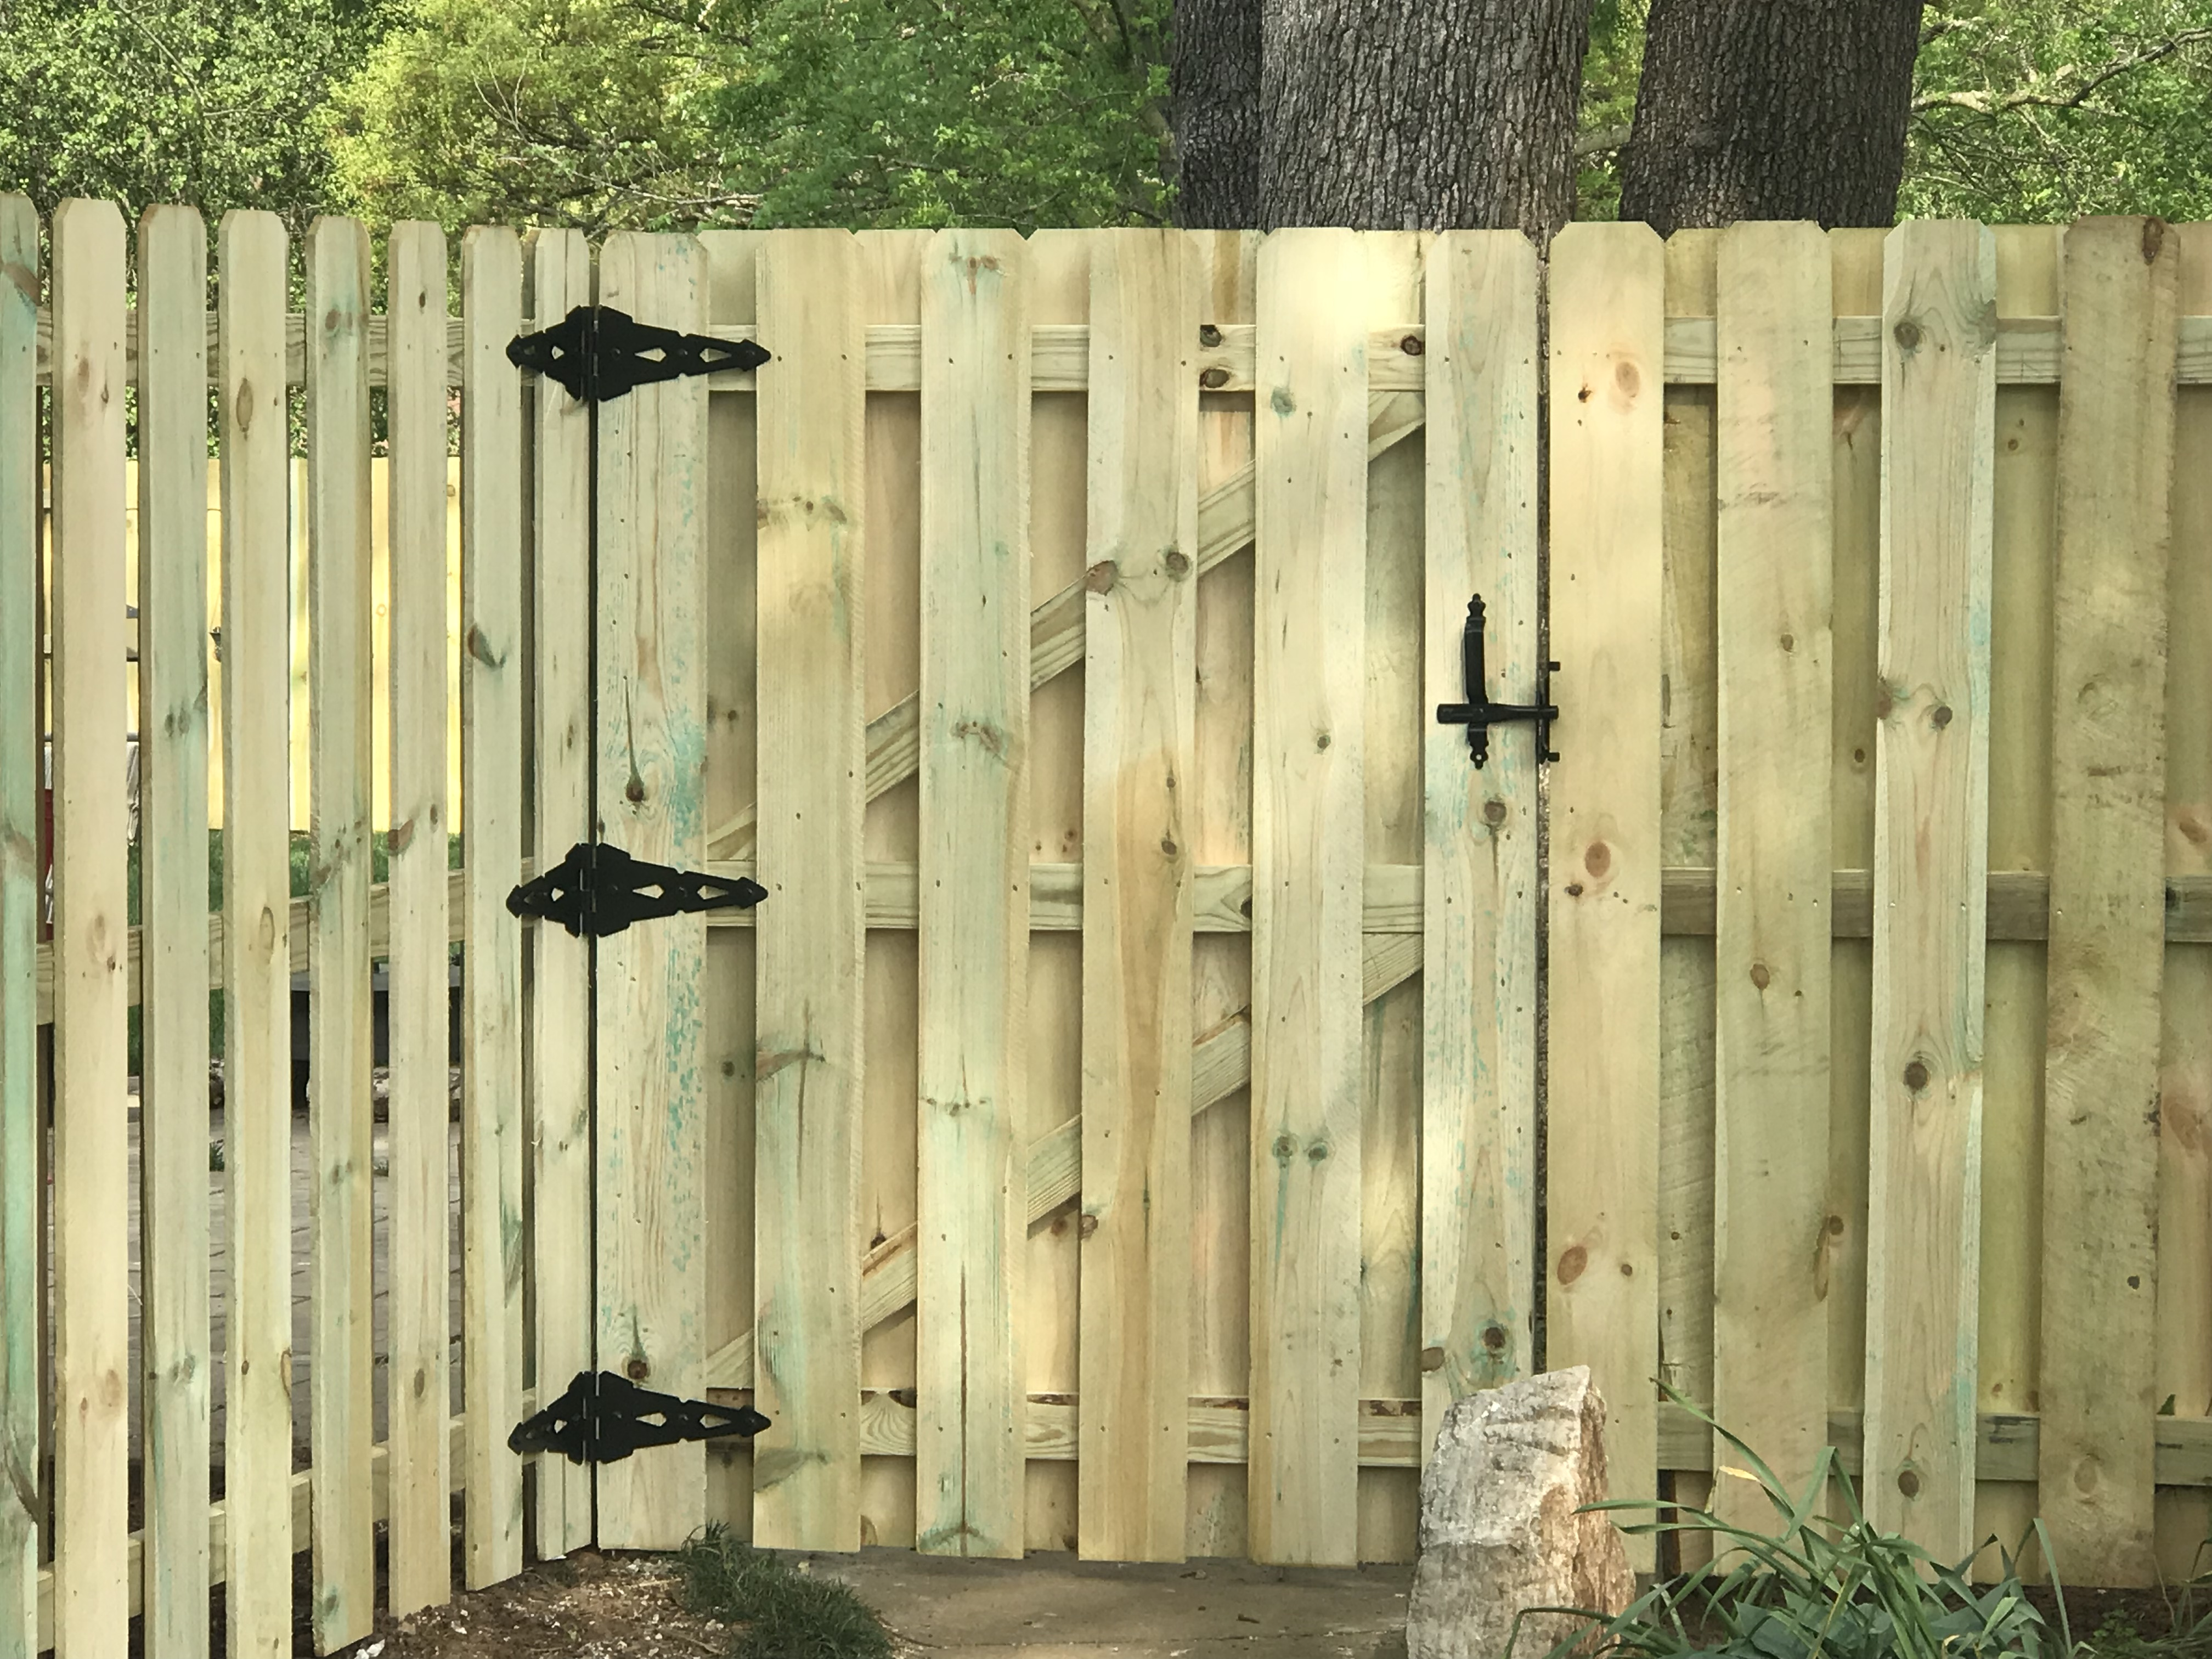 6ft Fence Dog Ear Shadow Box Style